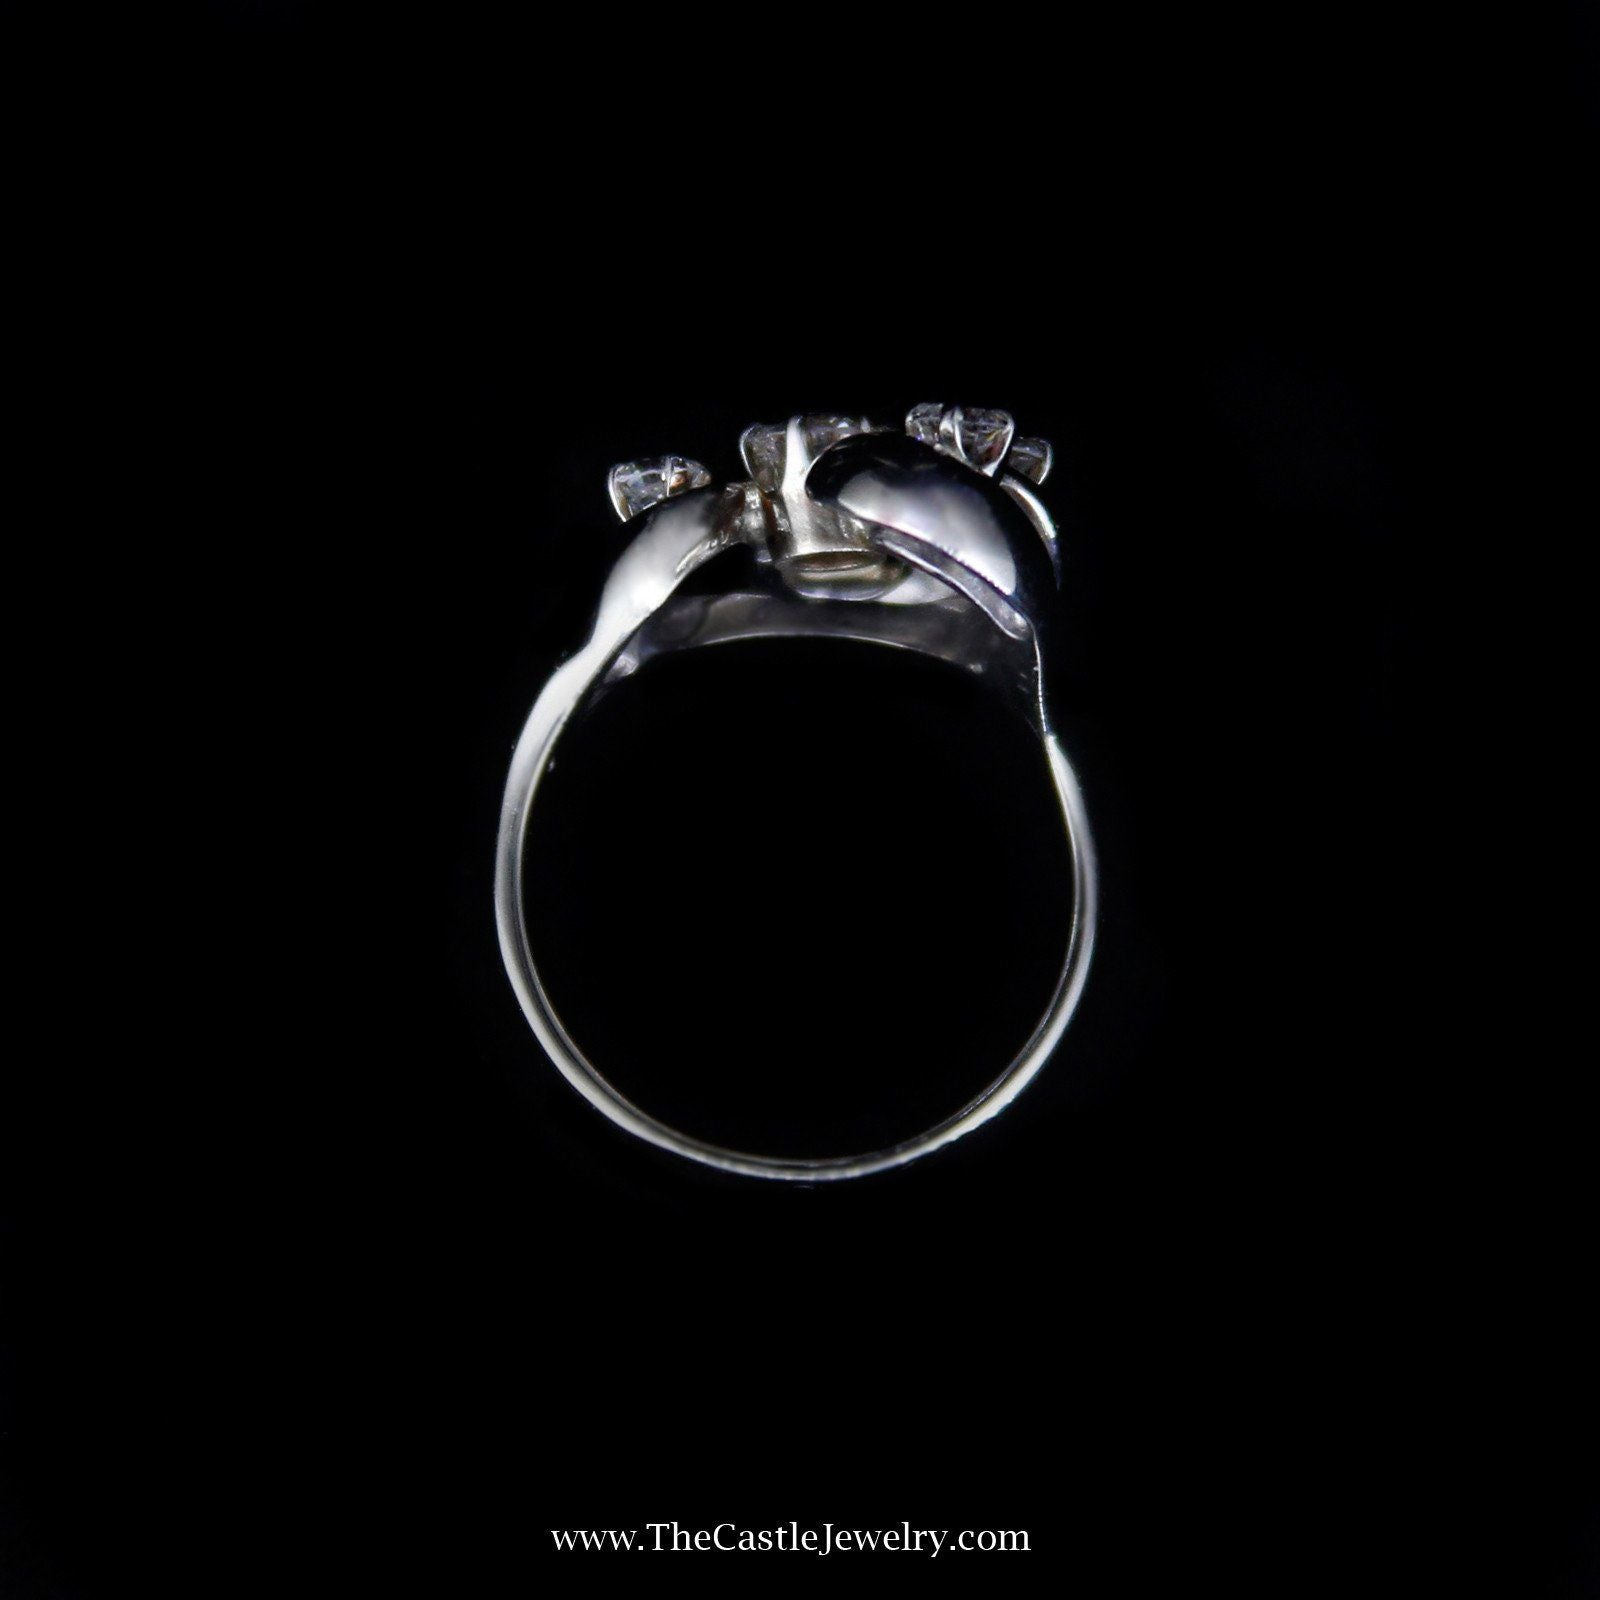 Unique .75cttw Freeform Design Diamond Ring in White Gold-1